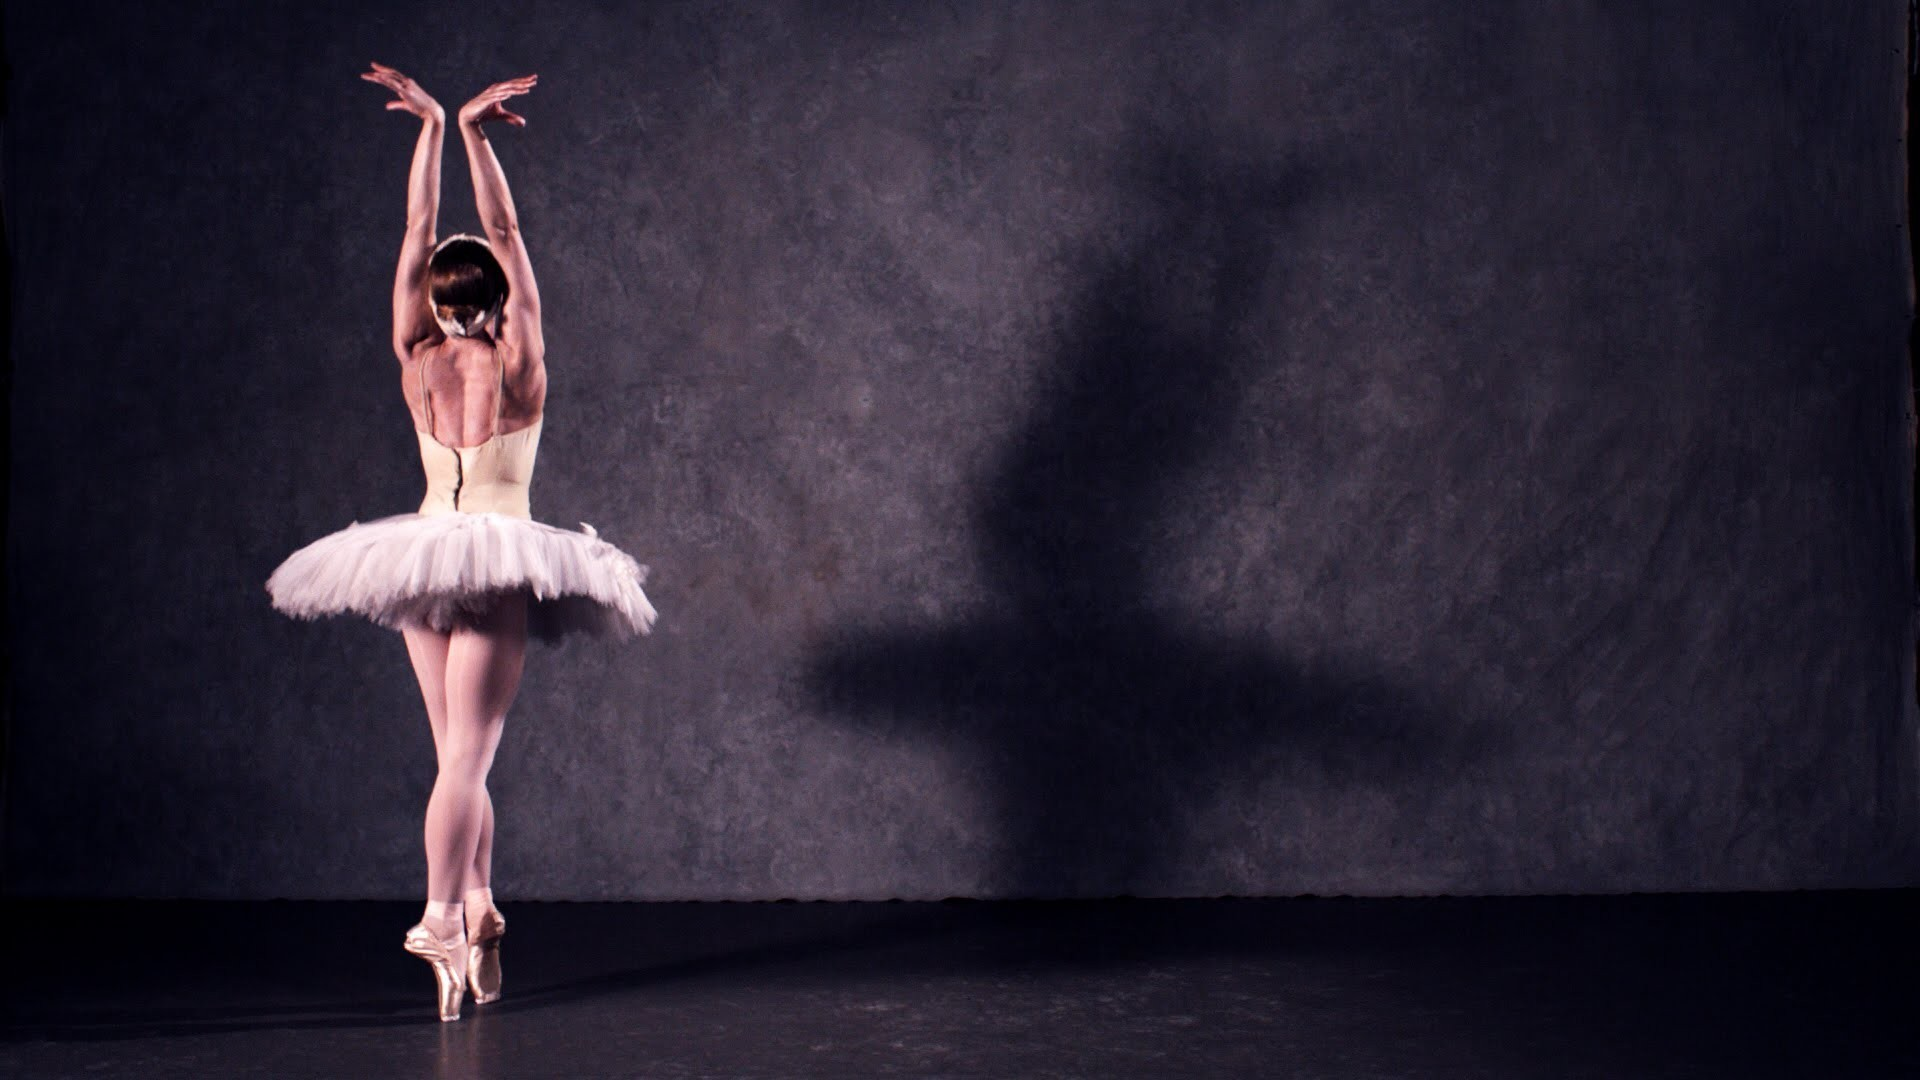 Wallpaper Of Dancer Posted By Michelle Anderson